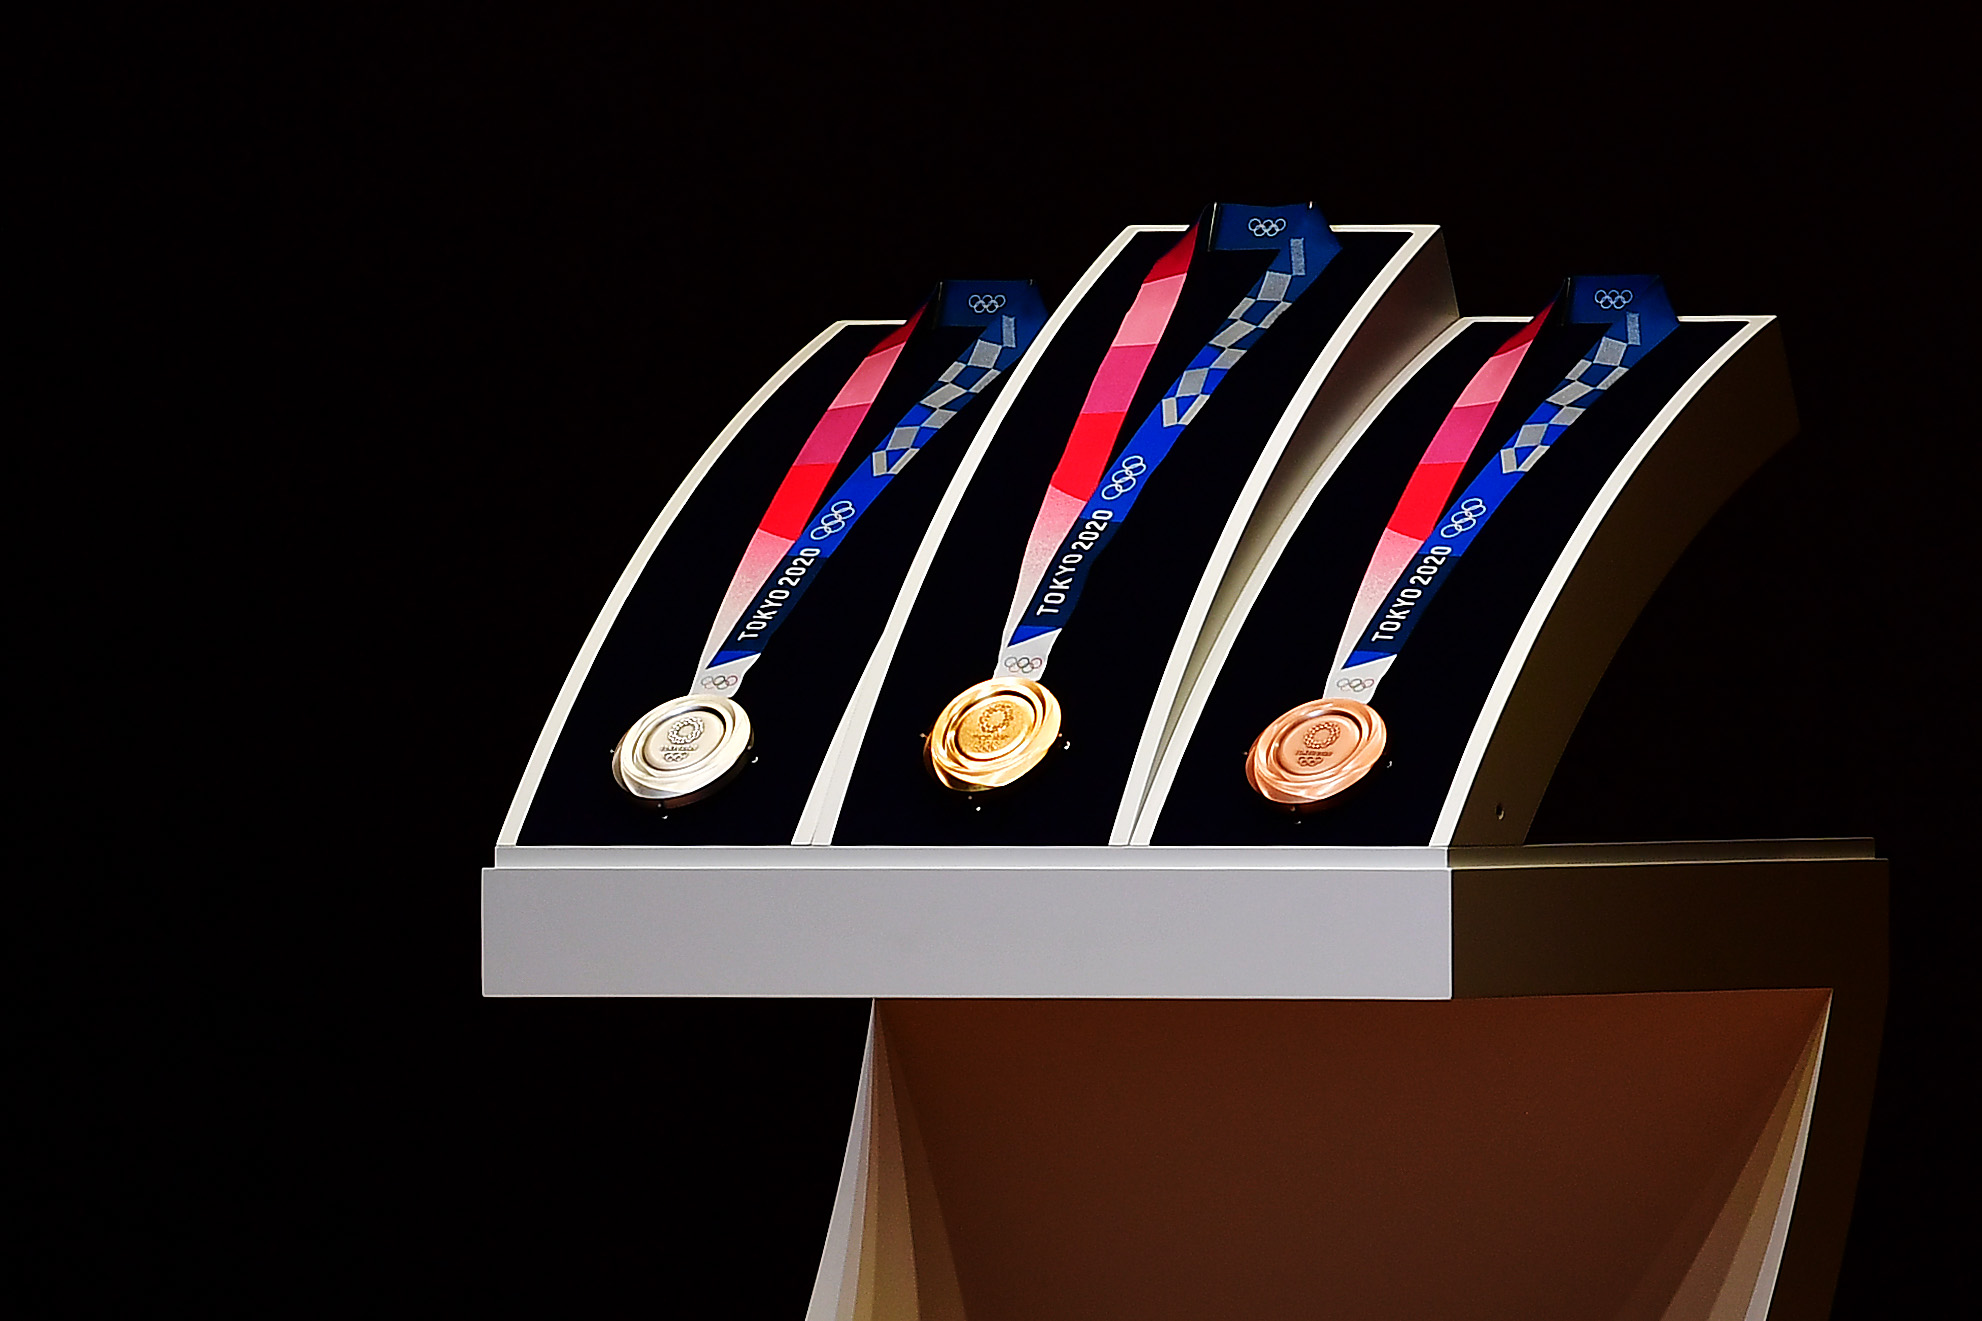 The 2020 Tokyo Olympic Medals Will Be Made Entirely of Recycled Electronics